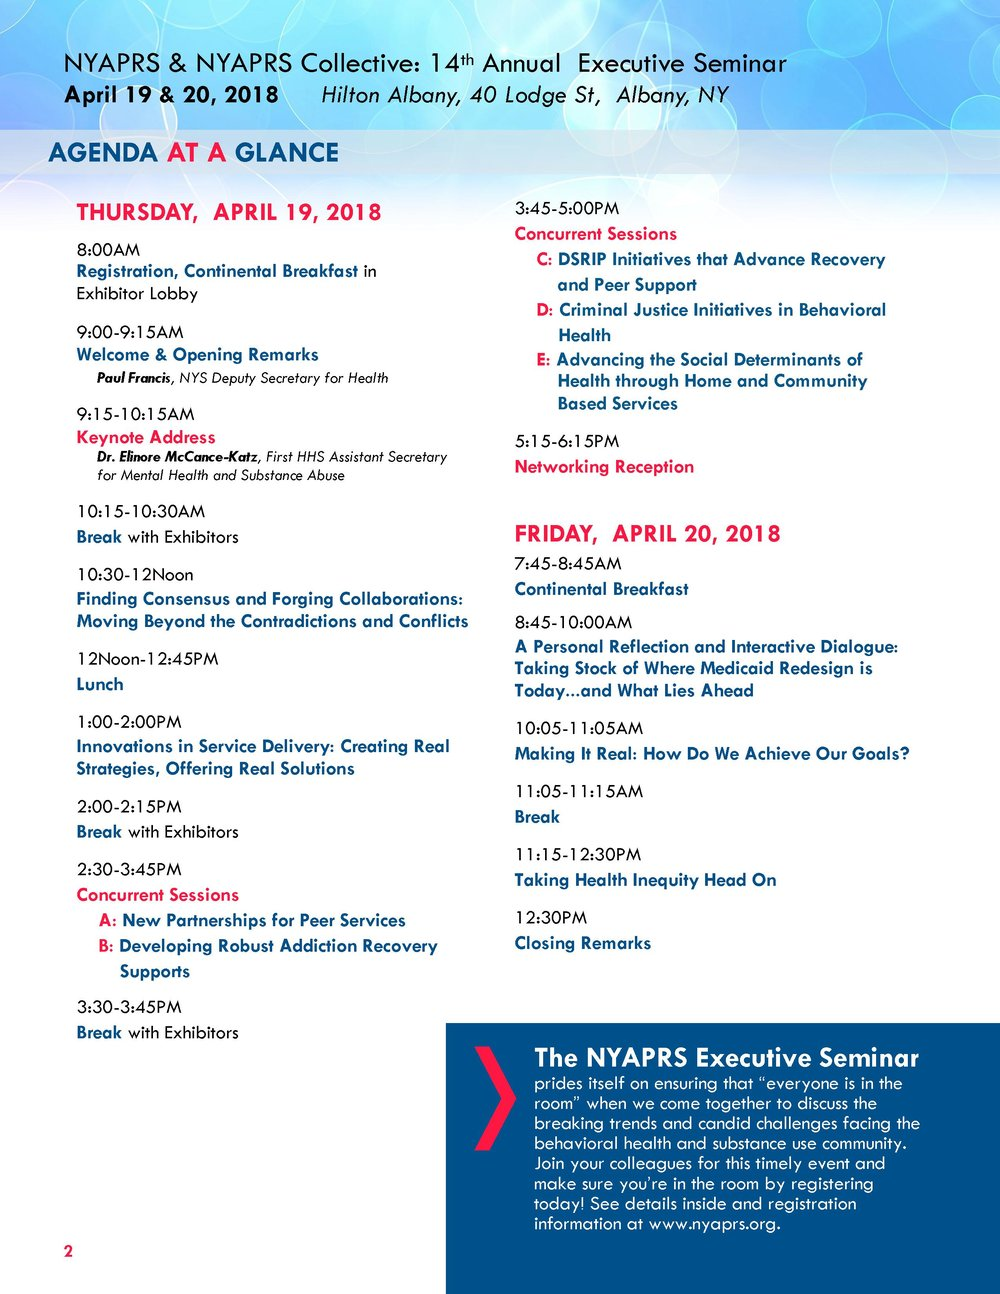 NYAPRS 2018 Program-2.jpg